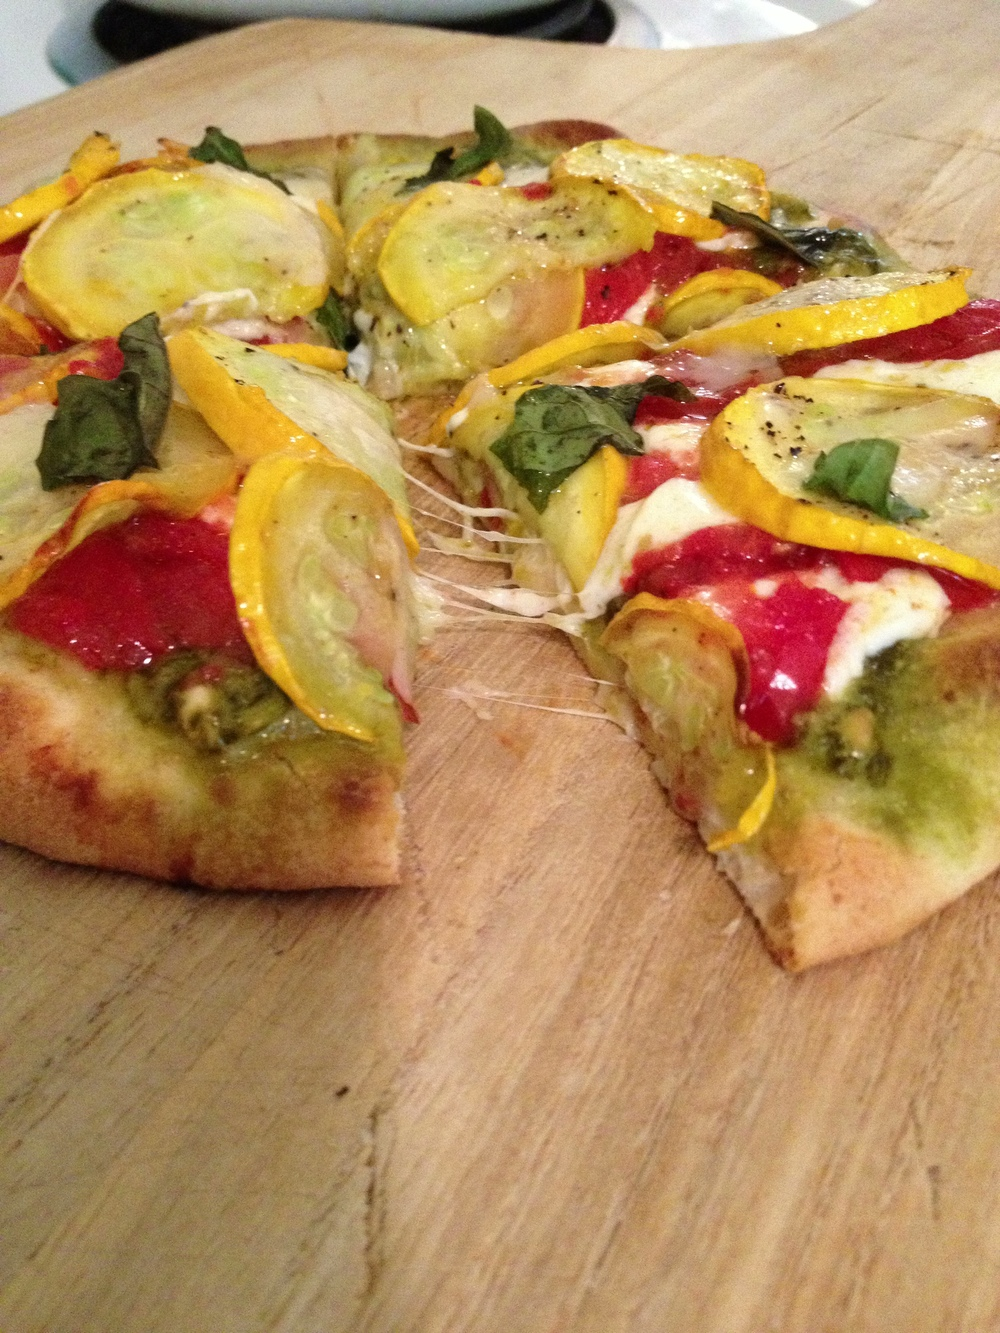 Tomato, onion, & yellow squash pesto pizza